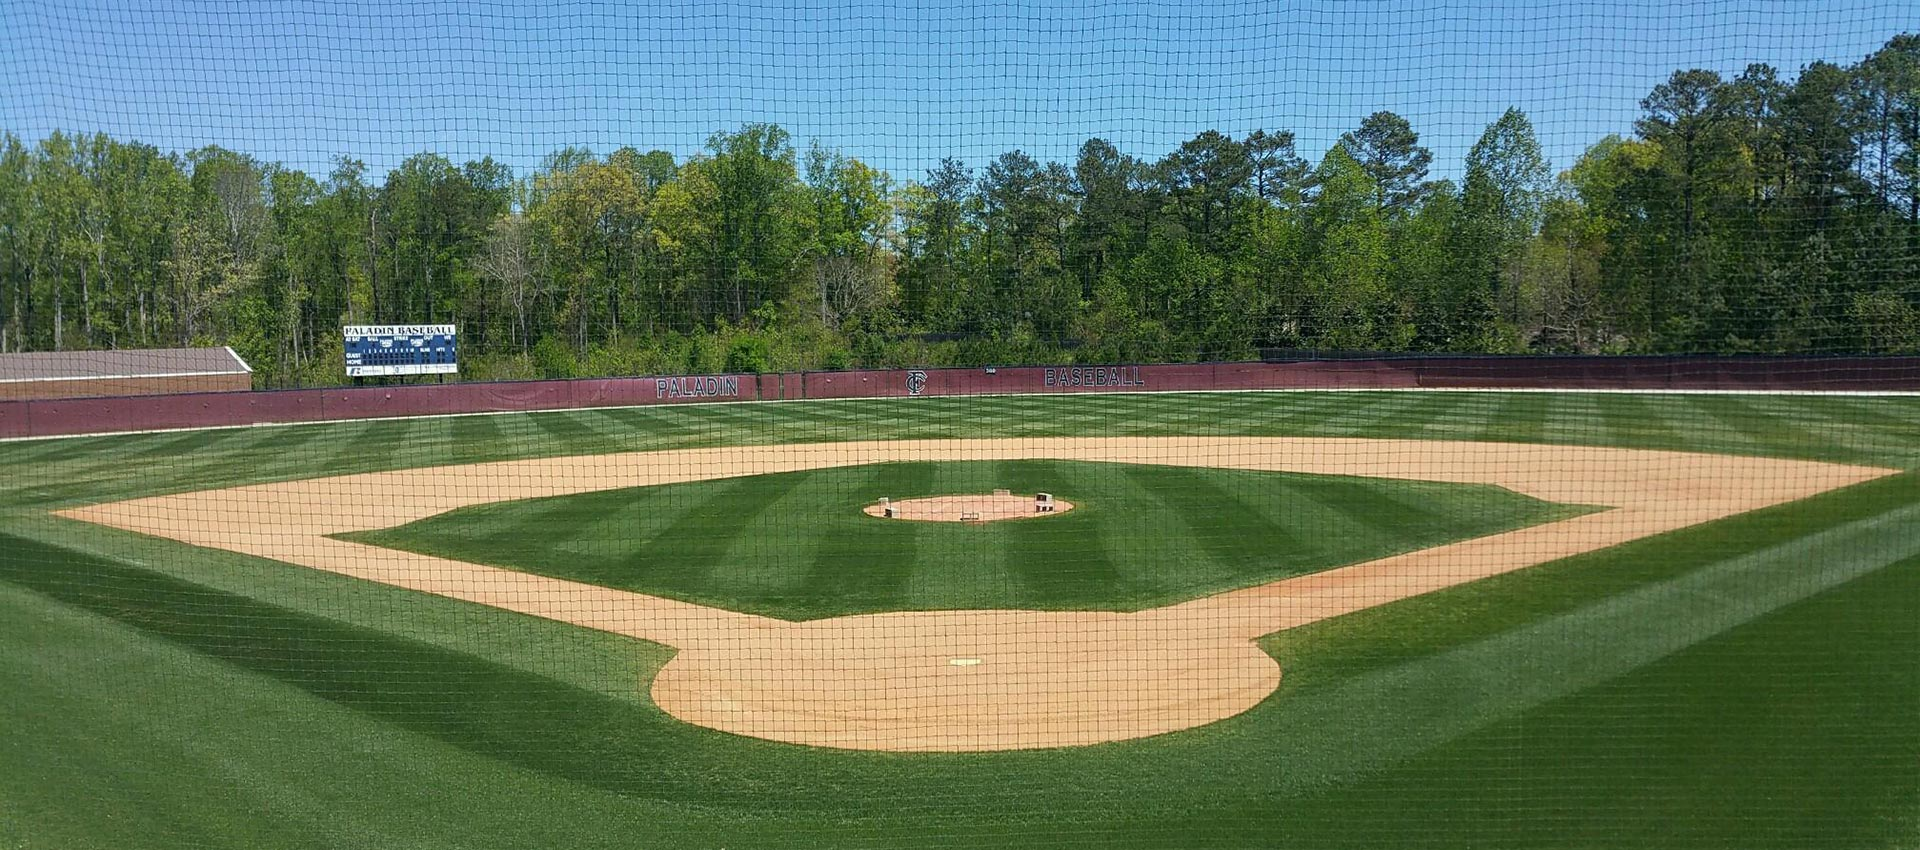 Turfwell Athletic Fields LLC: Field Maintenance, Aeration and Top Dressing in Metro Atlanta, Roswell and Alpharetta